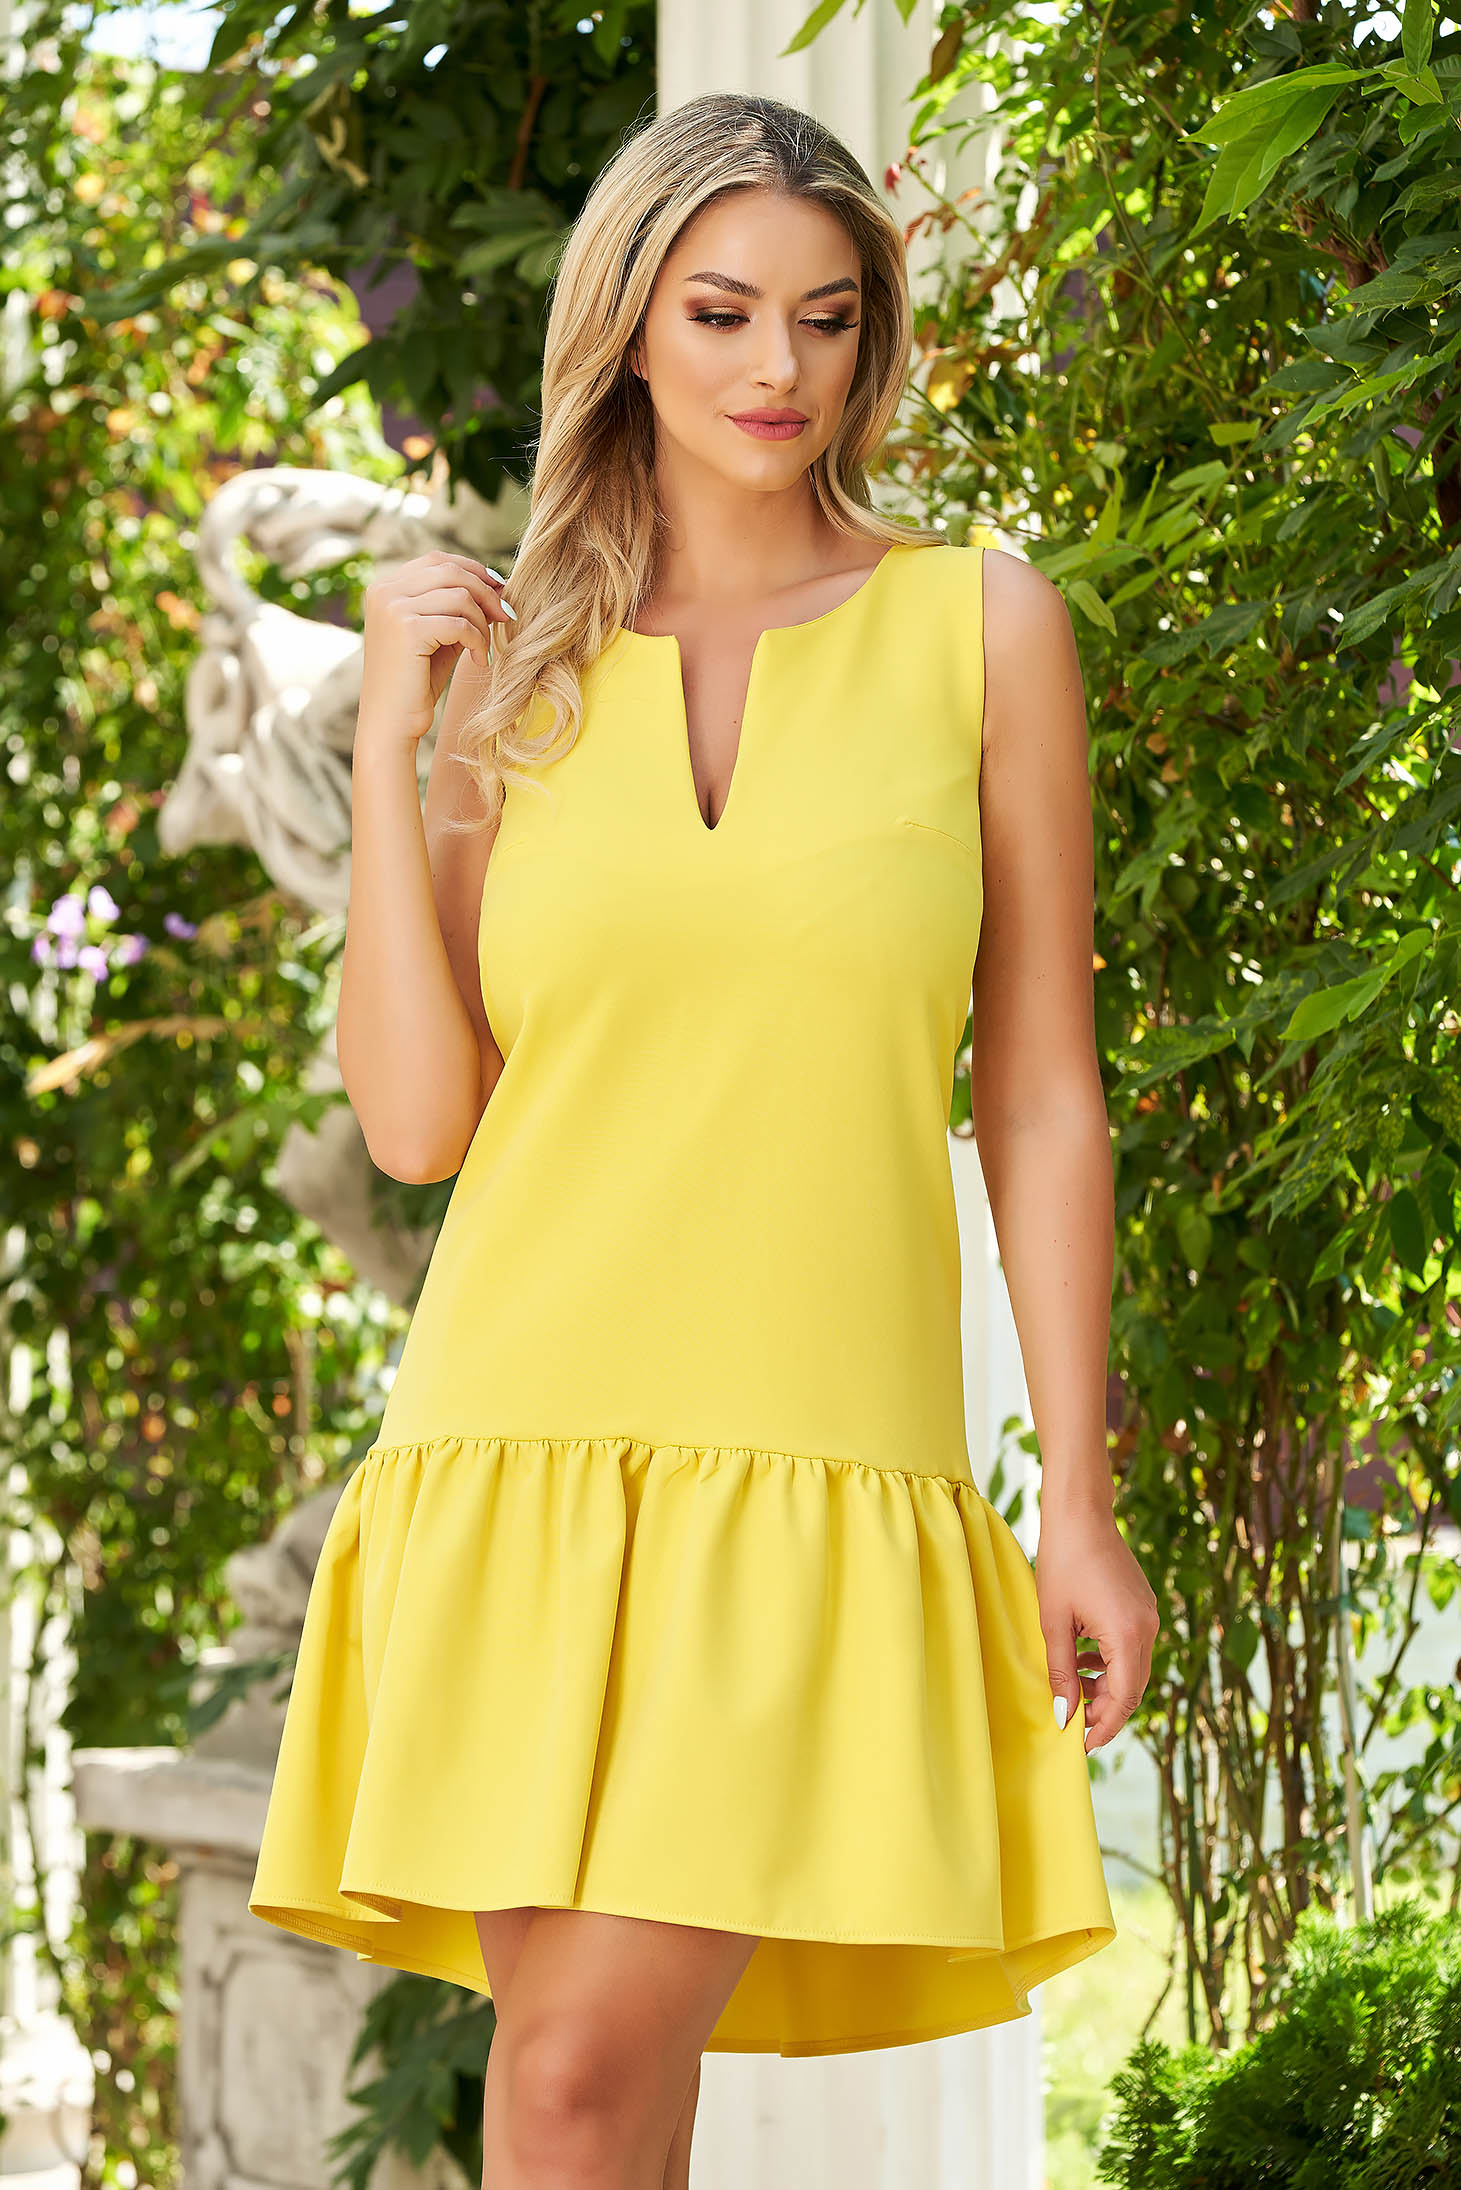 Dress StarShinerS yellow daily cloth flared with ruffles at the buttom of the dress midi